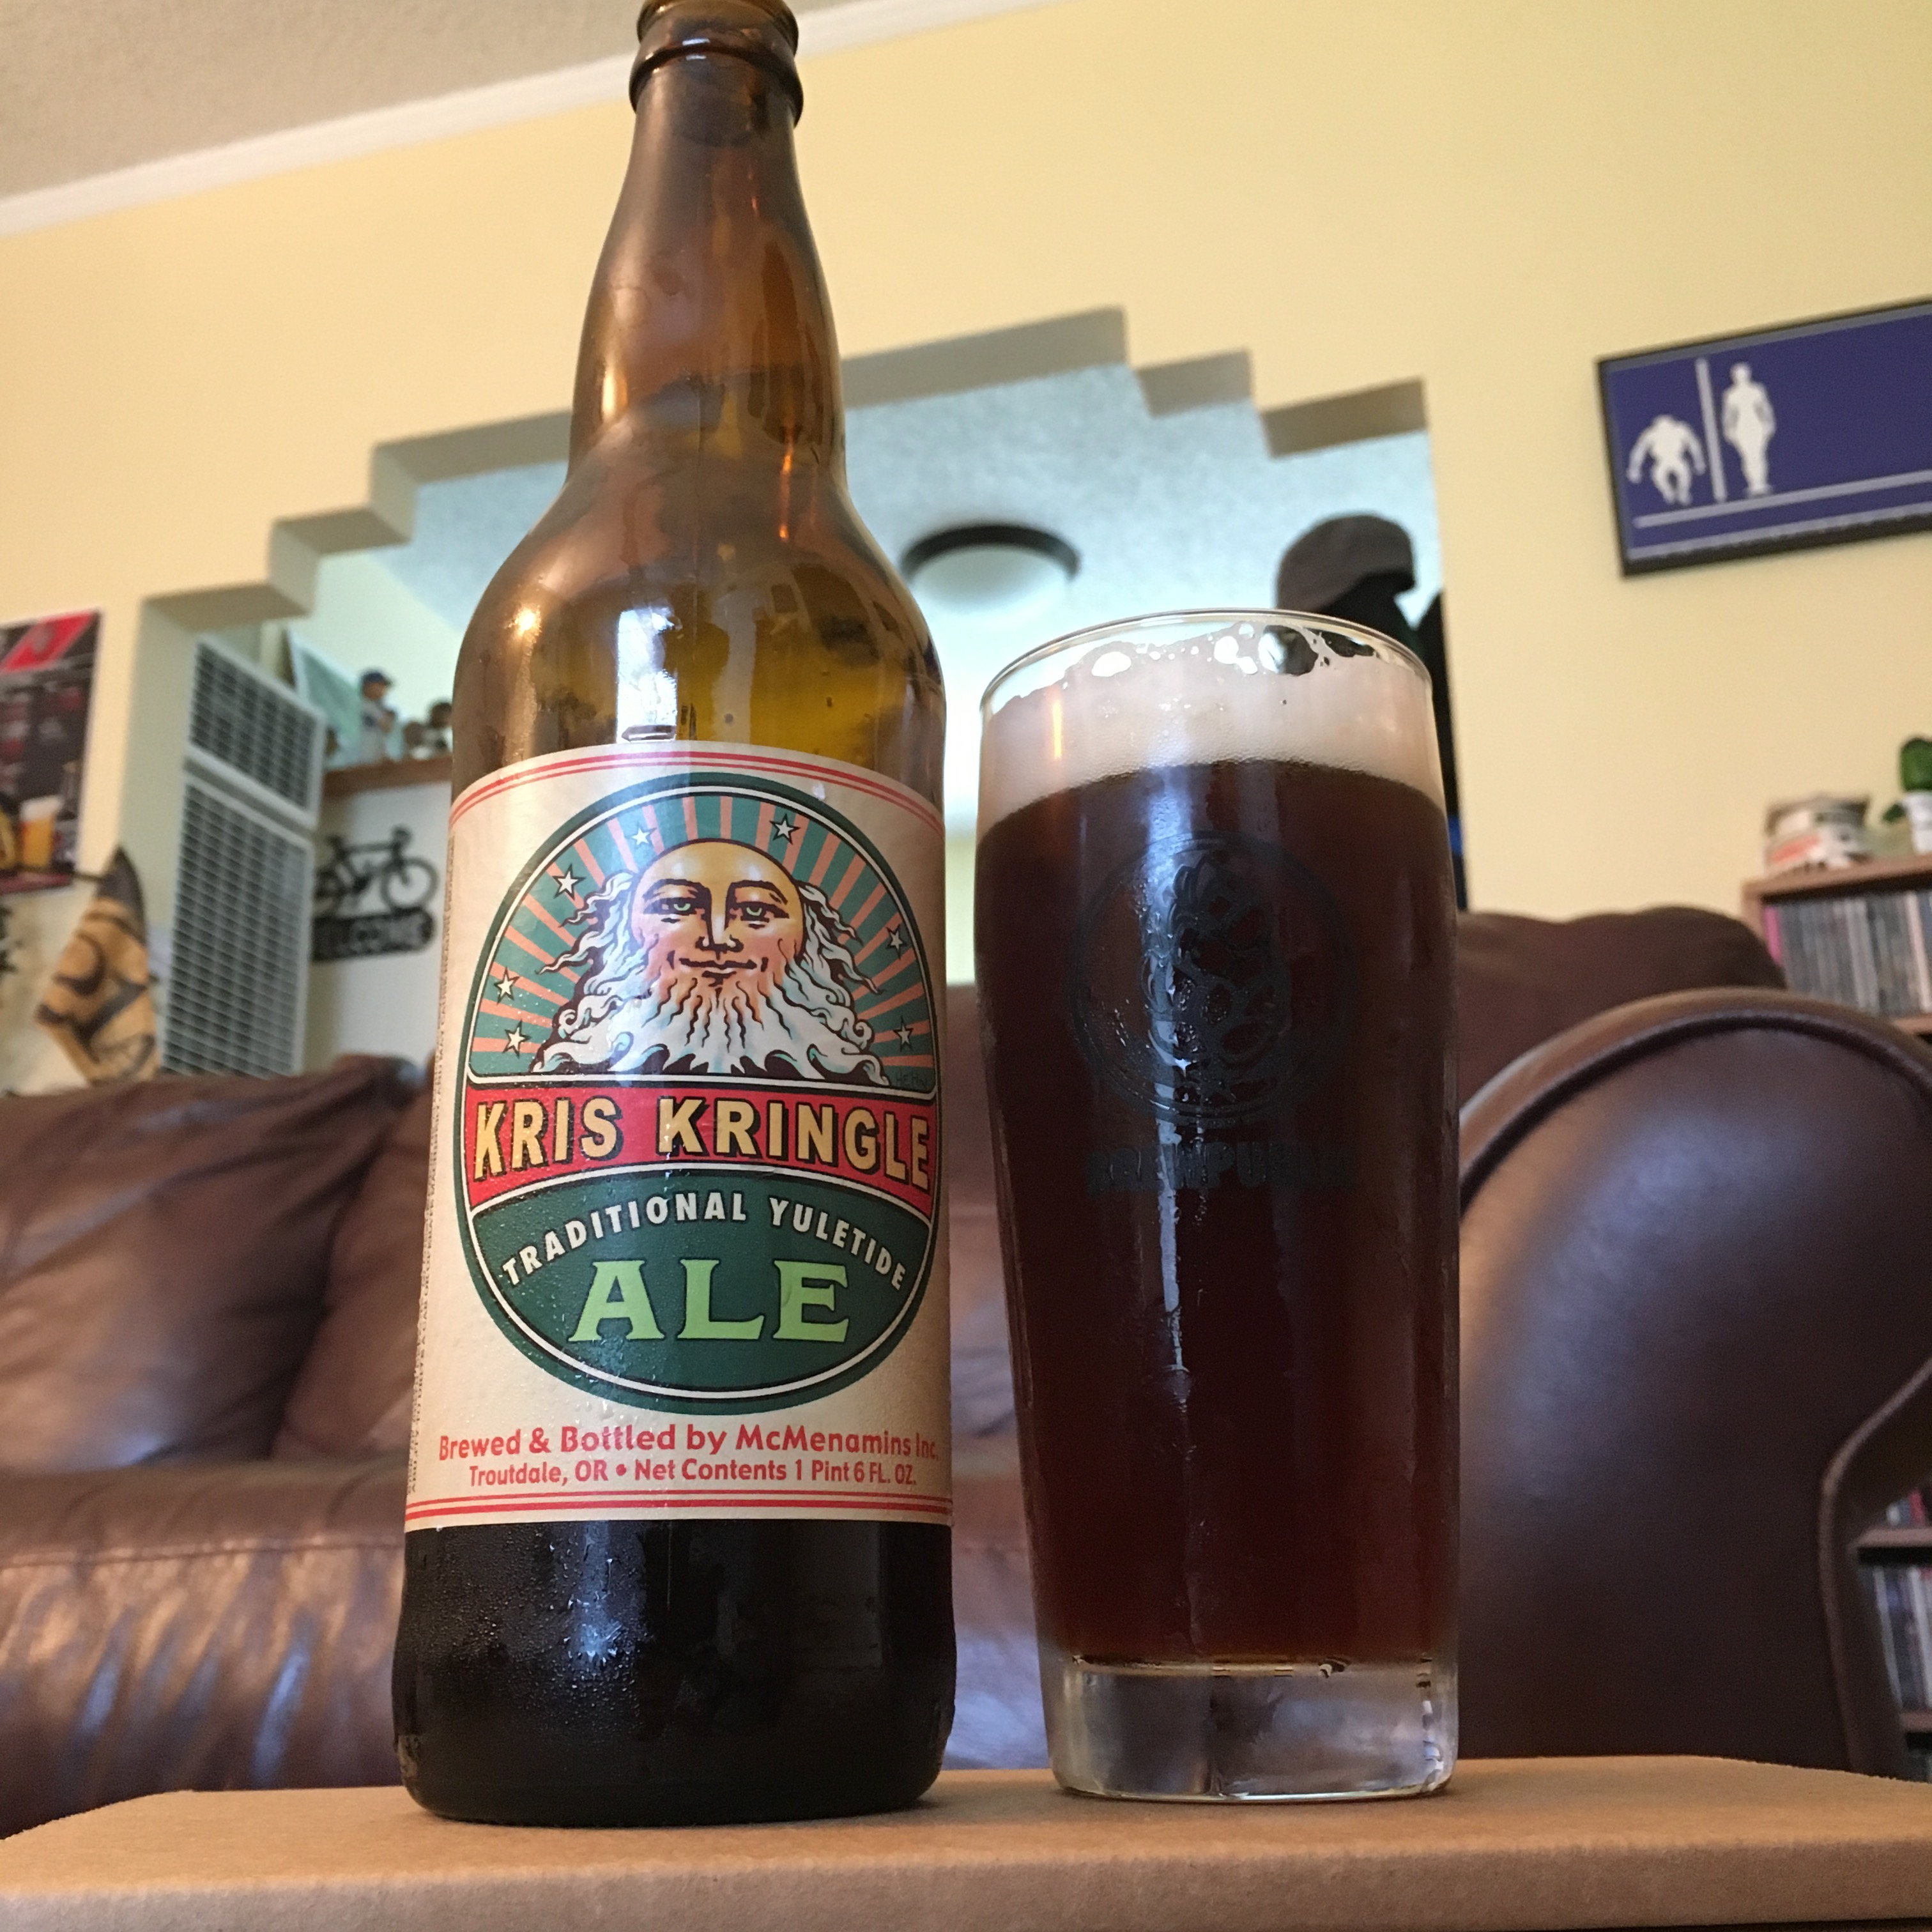 McMenamins 2016 Kris Kringle Traditional Yuletide Ale poured into a Brewpublic glass.